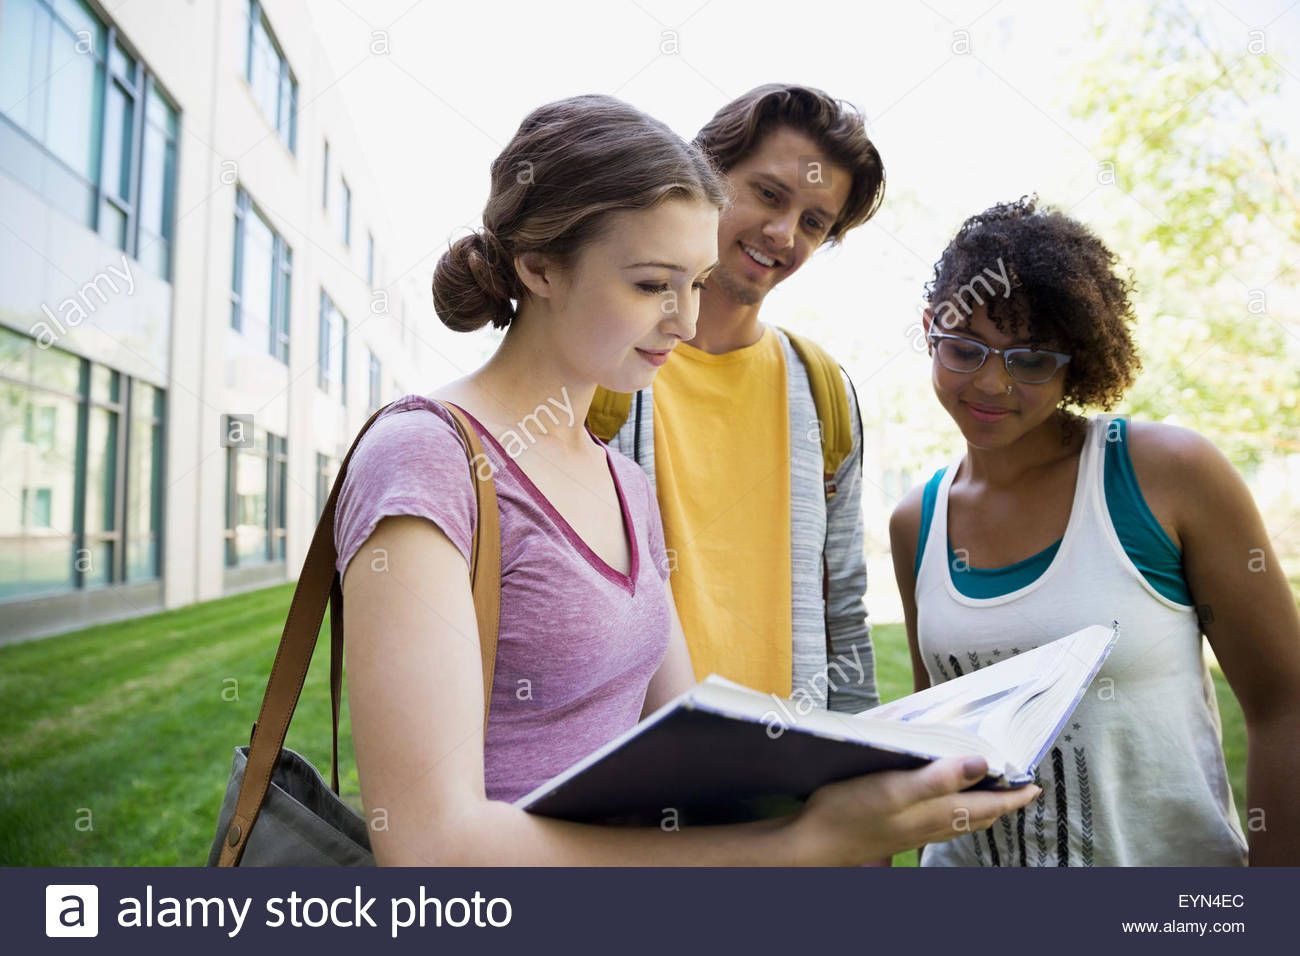 College students reading textbook on campus - Stock Image